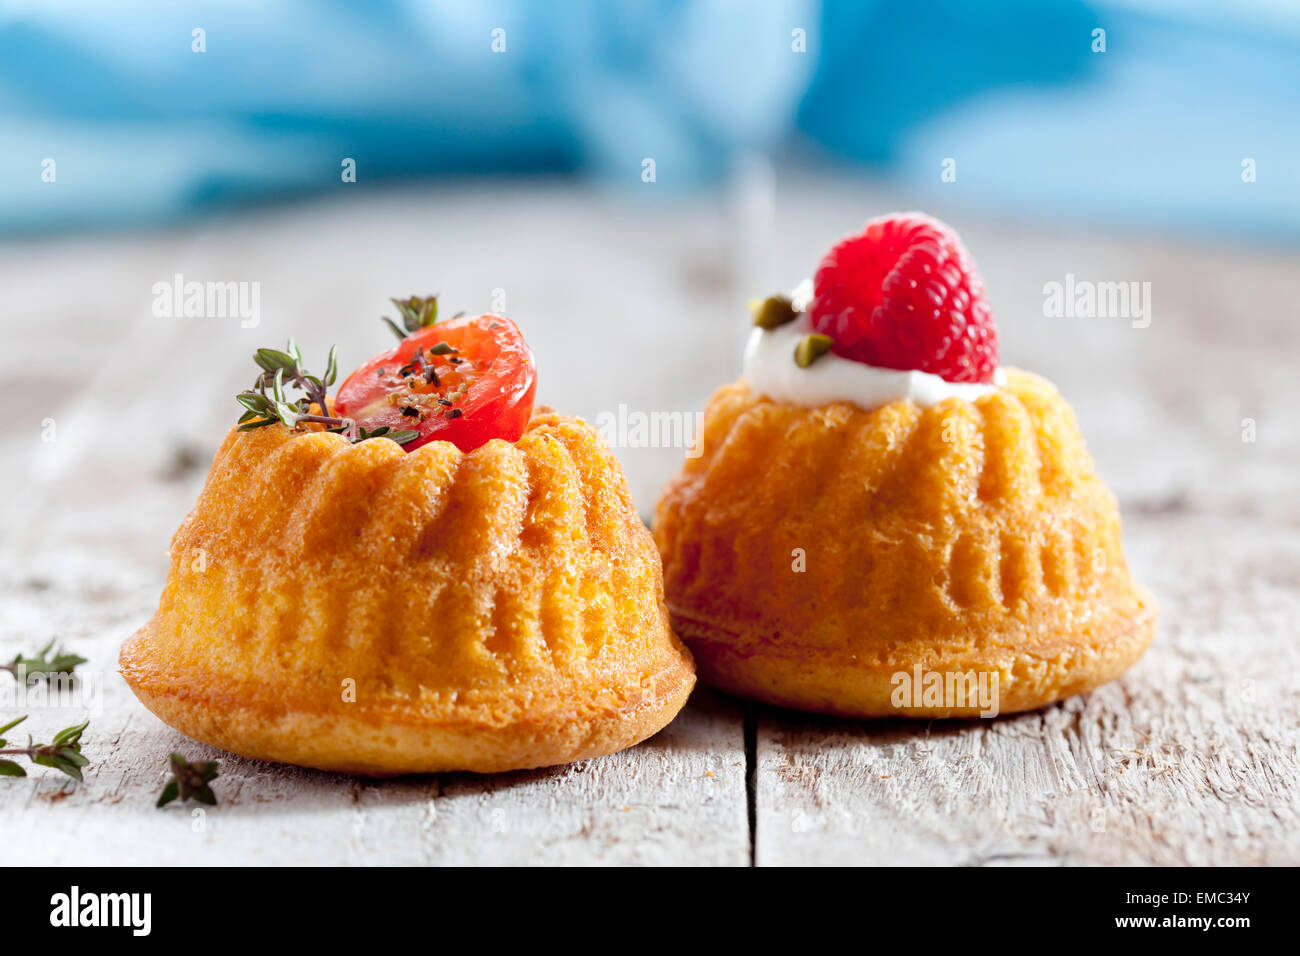 Two mini Gugelhupf filled with cream cheese and ricotta garnished with tomato and raspberry - Stock Image